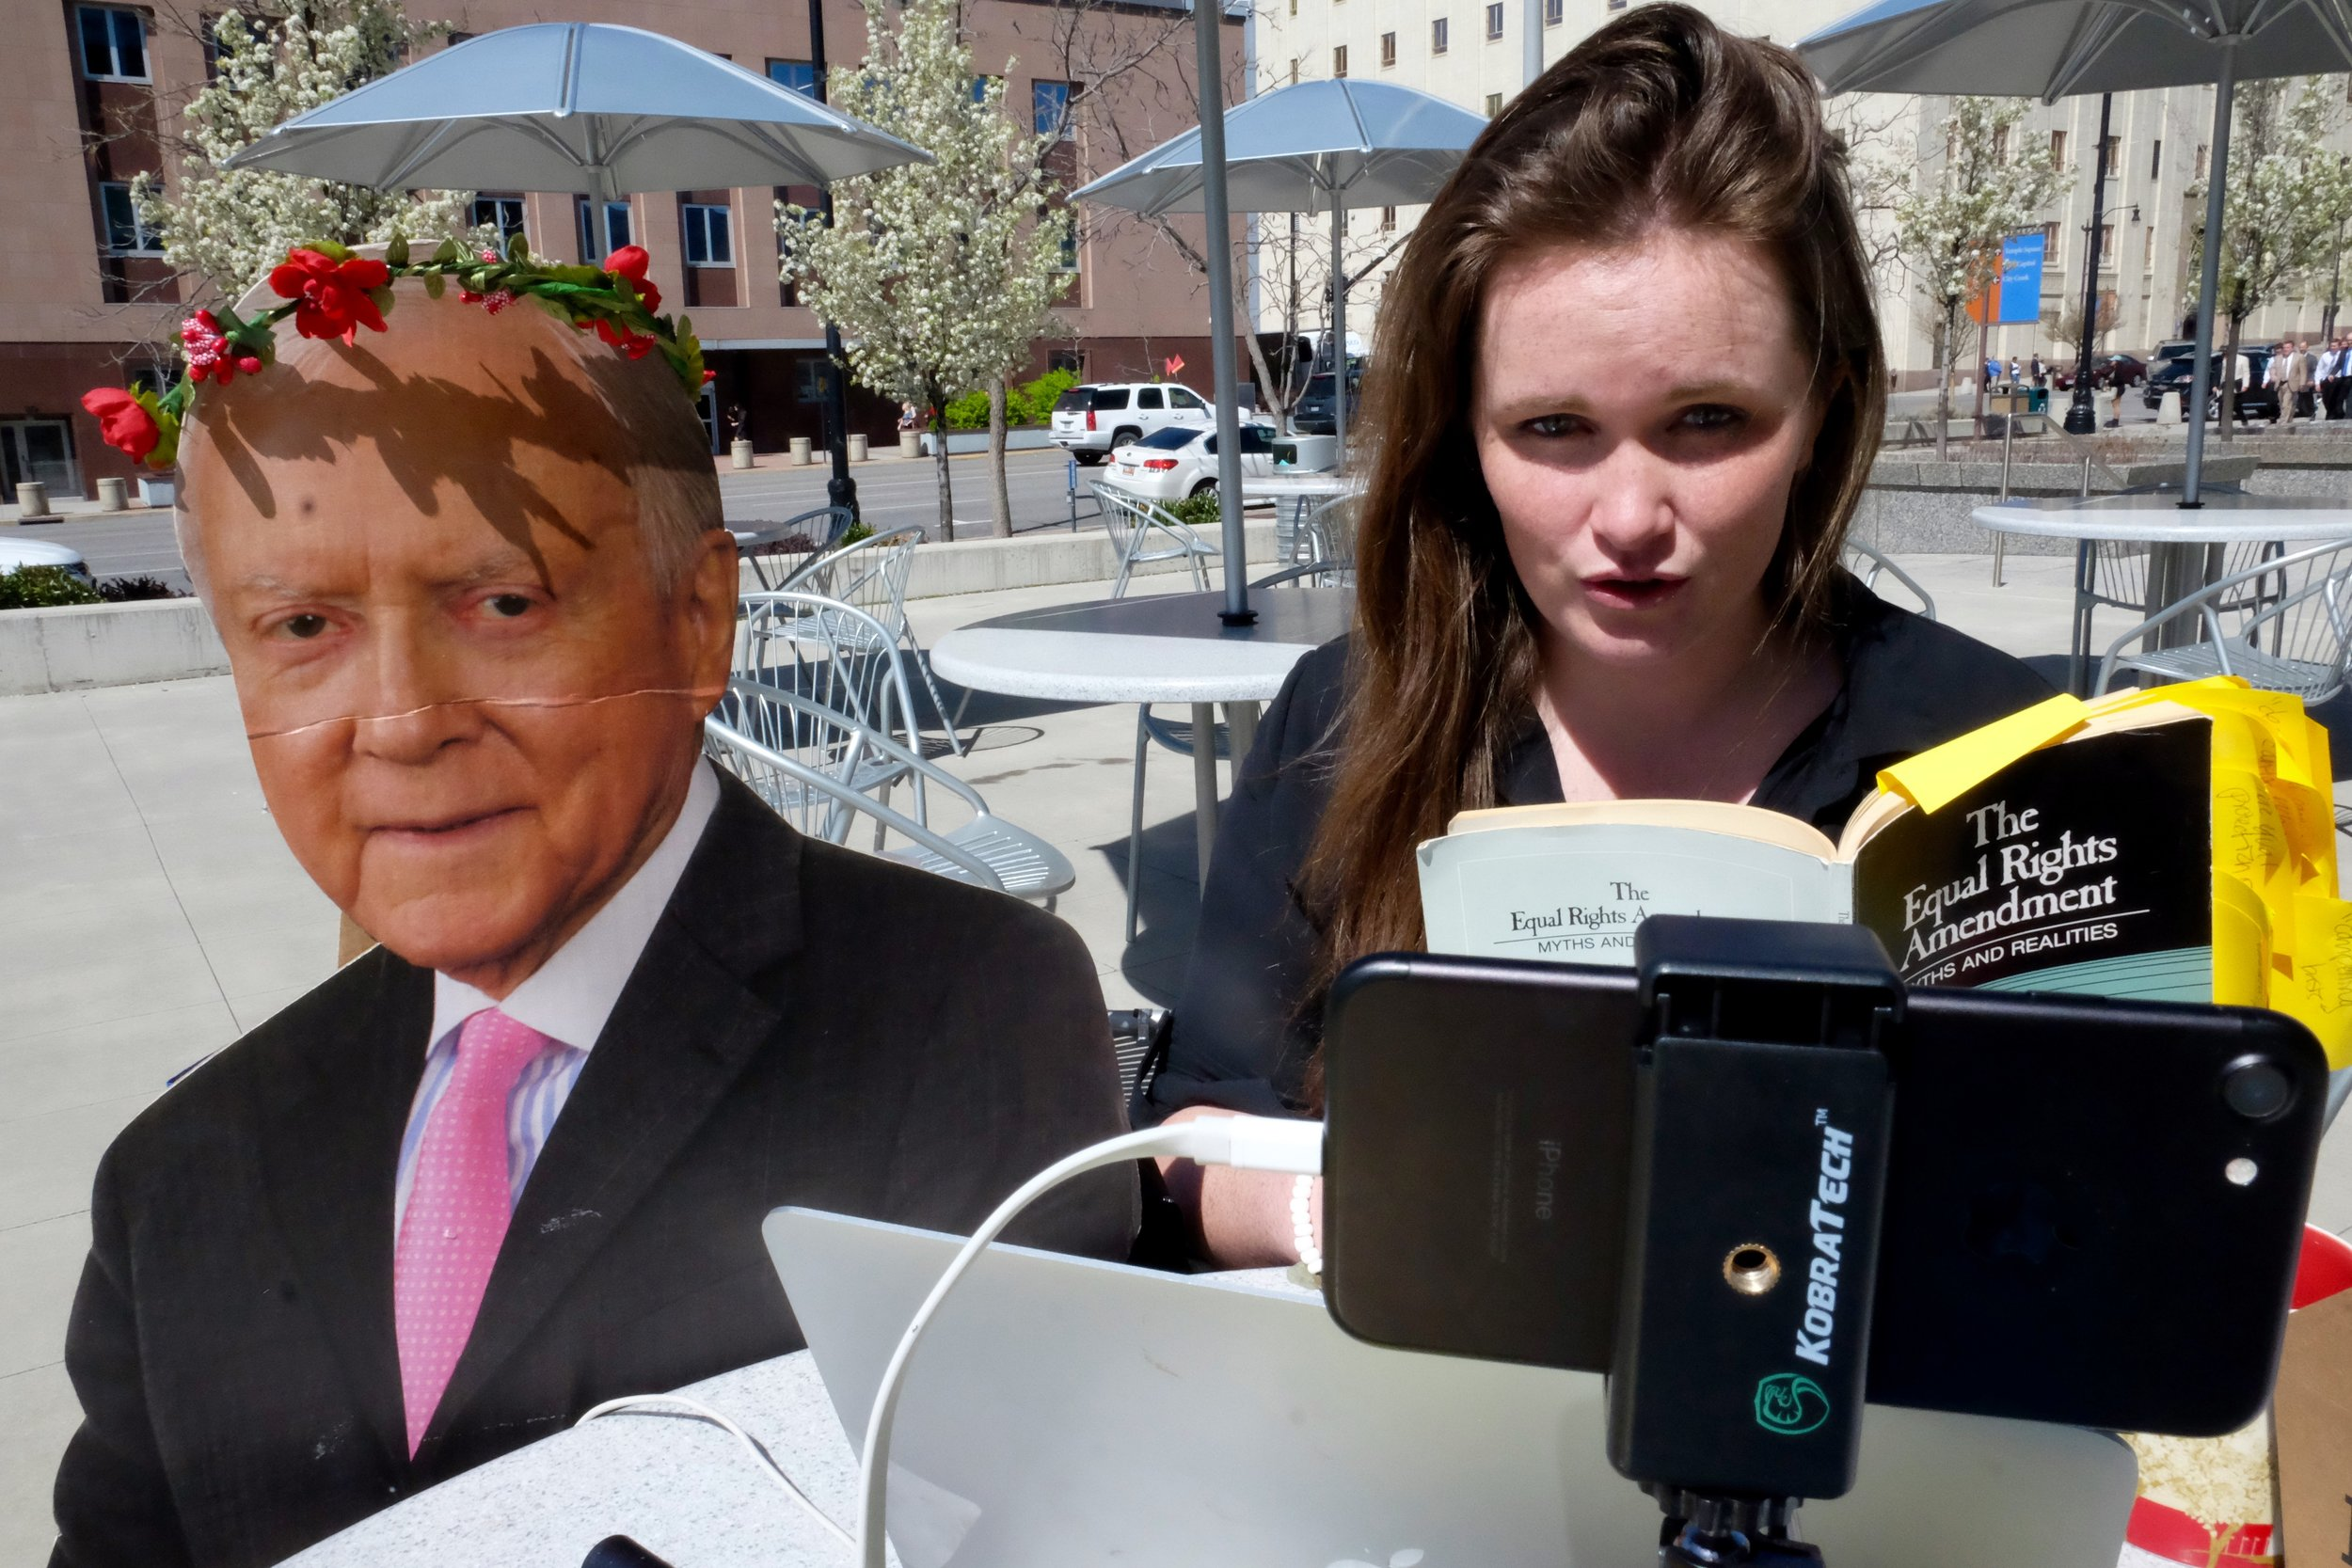 Madalena McNeil with a cardboard cutout of Senator Orrin Hatch in front of the Wallace F. Bennett federal building in Salt Lake City. (April 1, 2017) Photo by Andrea Smardon